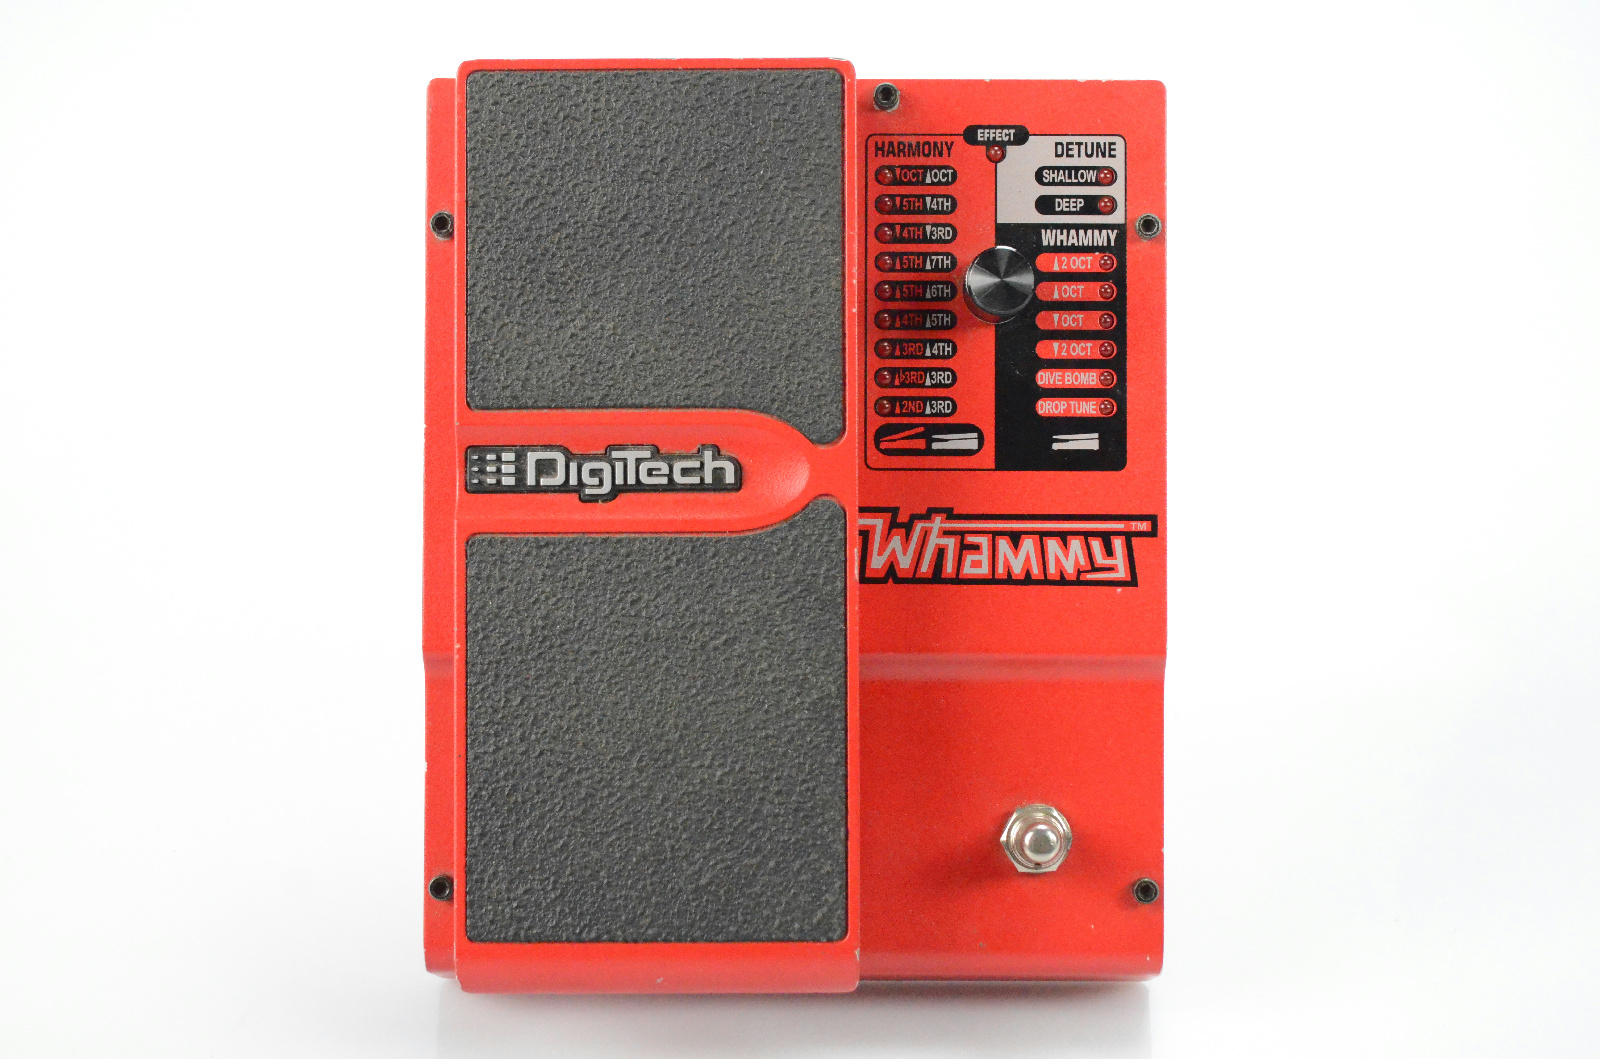 Digitech Whammy IV 4th Generation Guitar Effect Pedal Owned by Papa Roach #33315